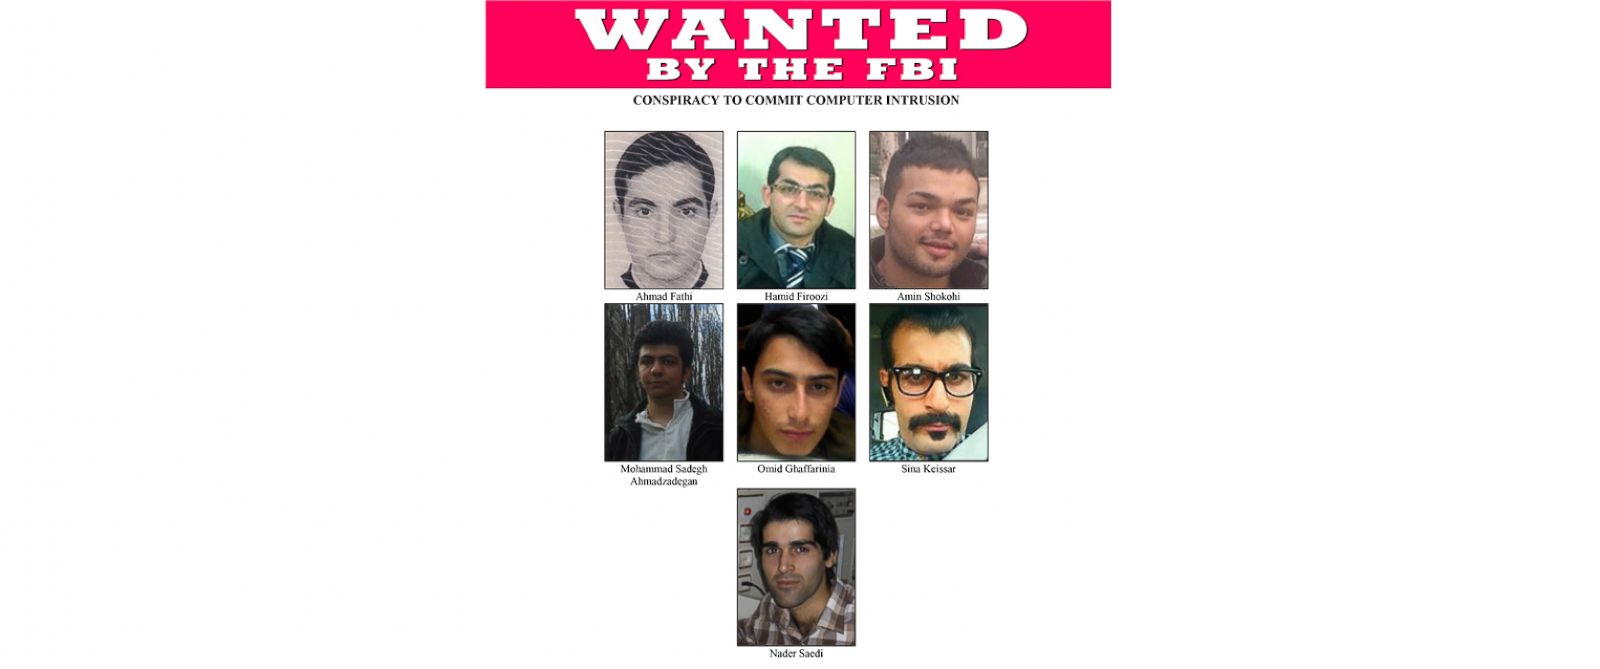 PHOTO: The FBI is seeking seven Iranian nationals after they were indicted by a grand jury, Jan. 21, 2016.